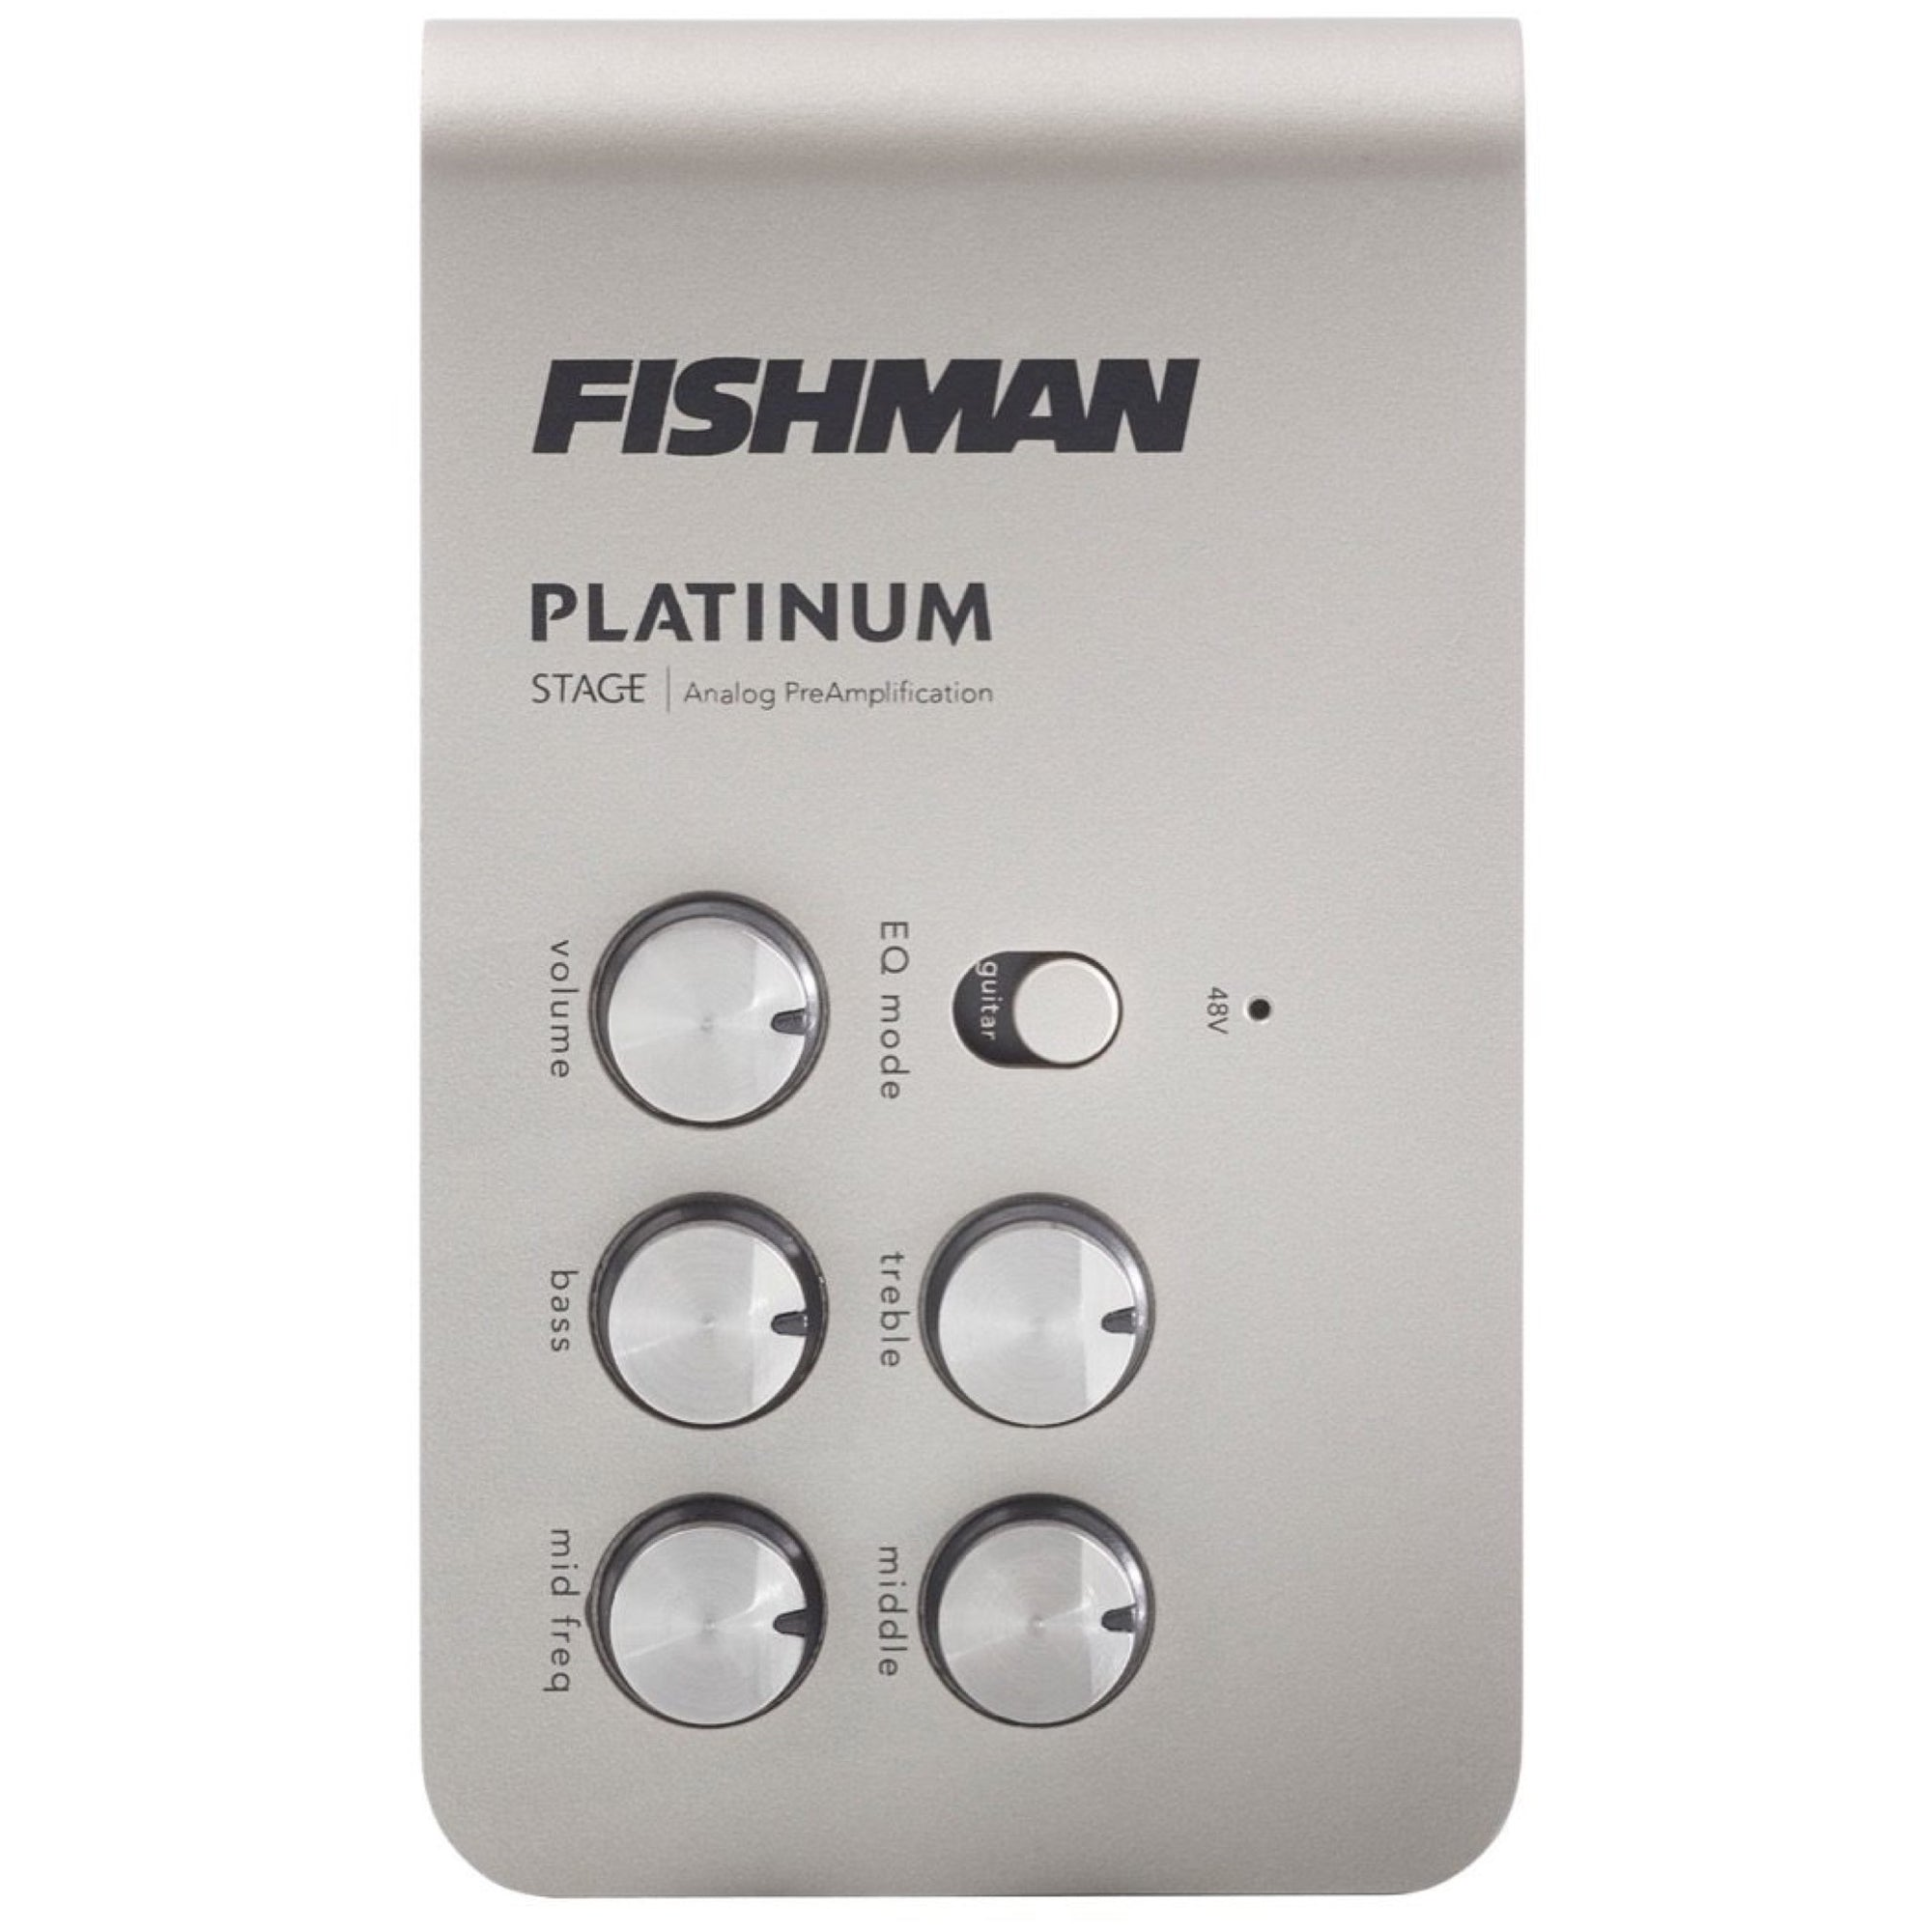 Fishman Platinum Stage EQ Analog Preamp Pedal